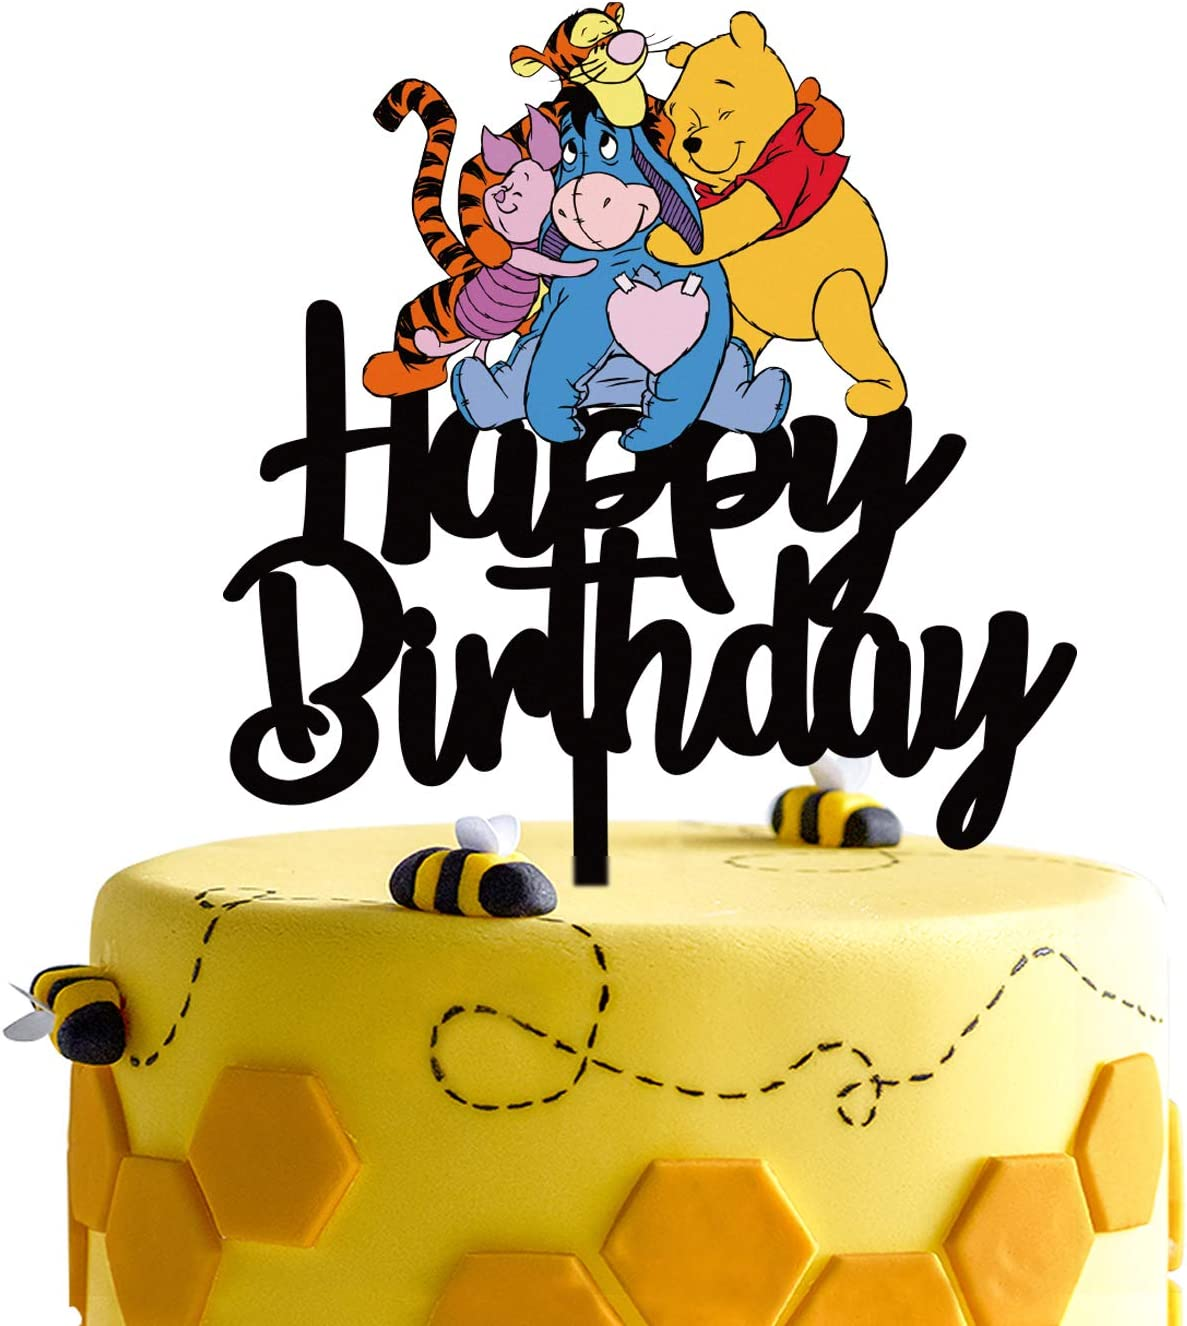 Amazon Com Black Acrylic Winnie The Pooh Happy Birthday Cake Topper Disney Cartoon Winnie The Pooh Theme Birthday Party Suppliers Winnie And Friends Decoration Home Kitchen